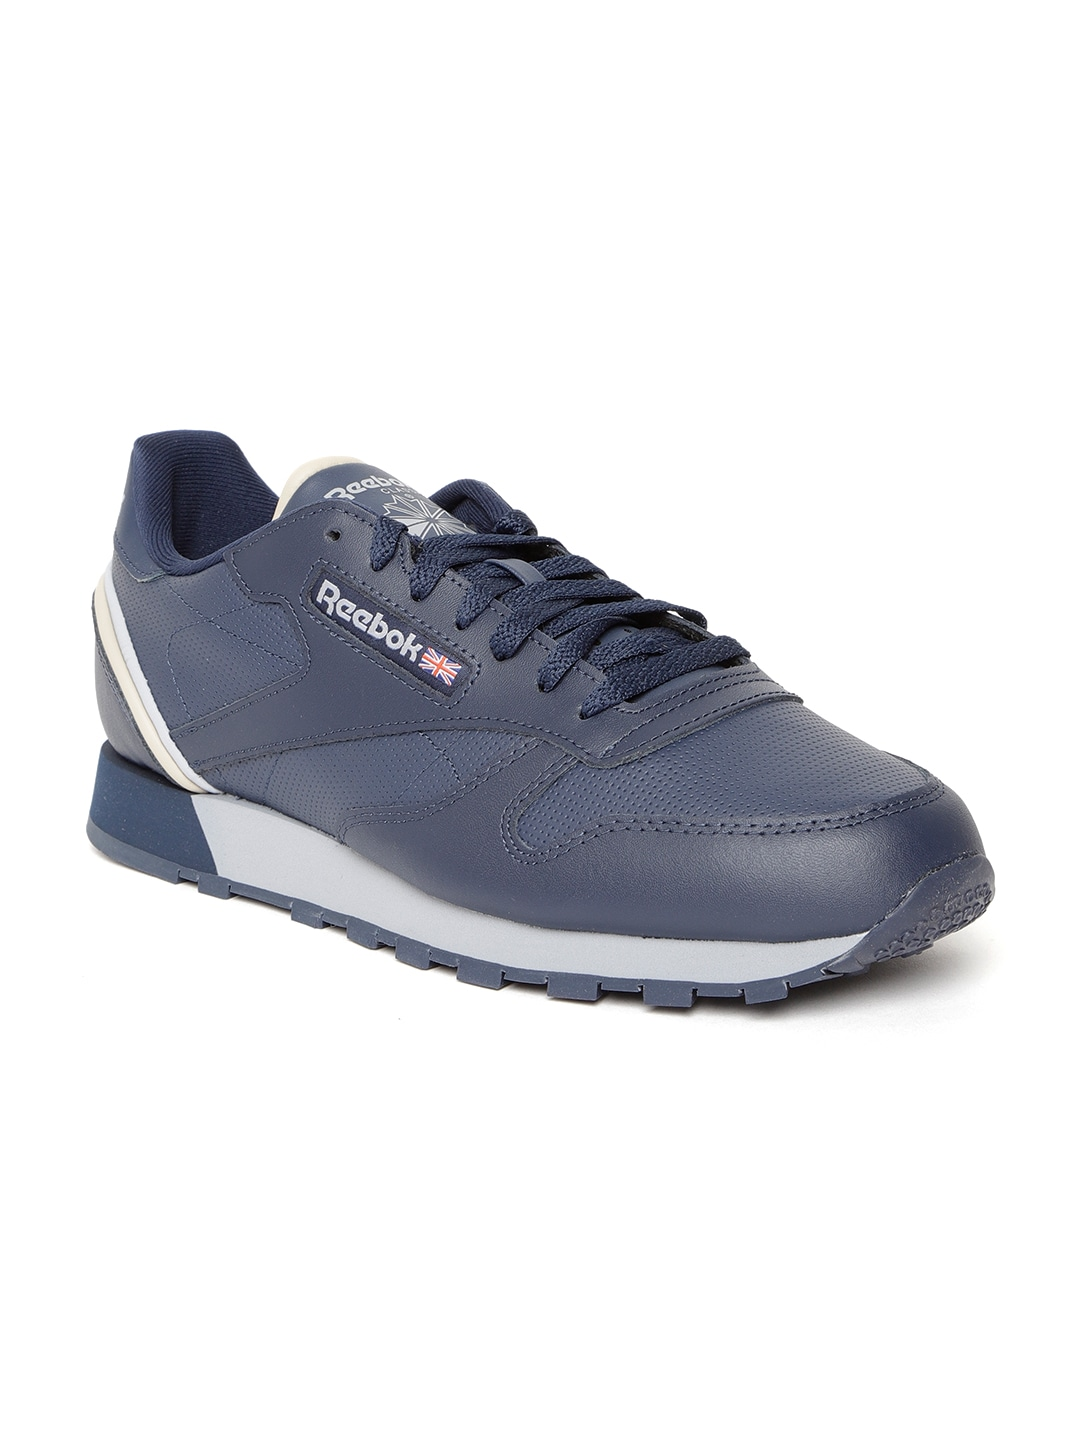 dab82e4c258f9 Reebok Navy Blue Blue Shoes - Buy Reebok Navy Blue Blue Shoes online in  India